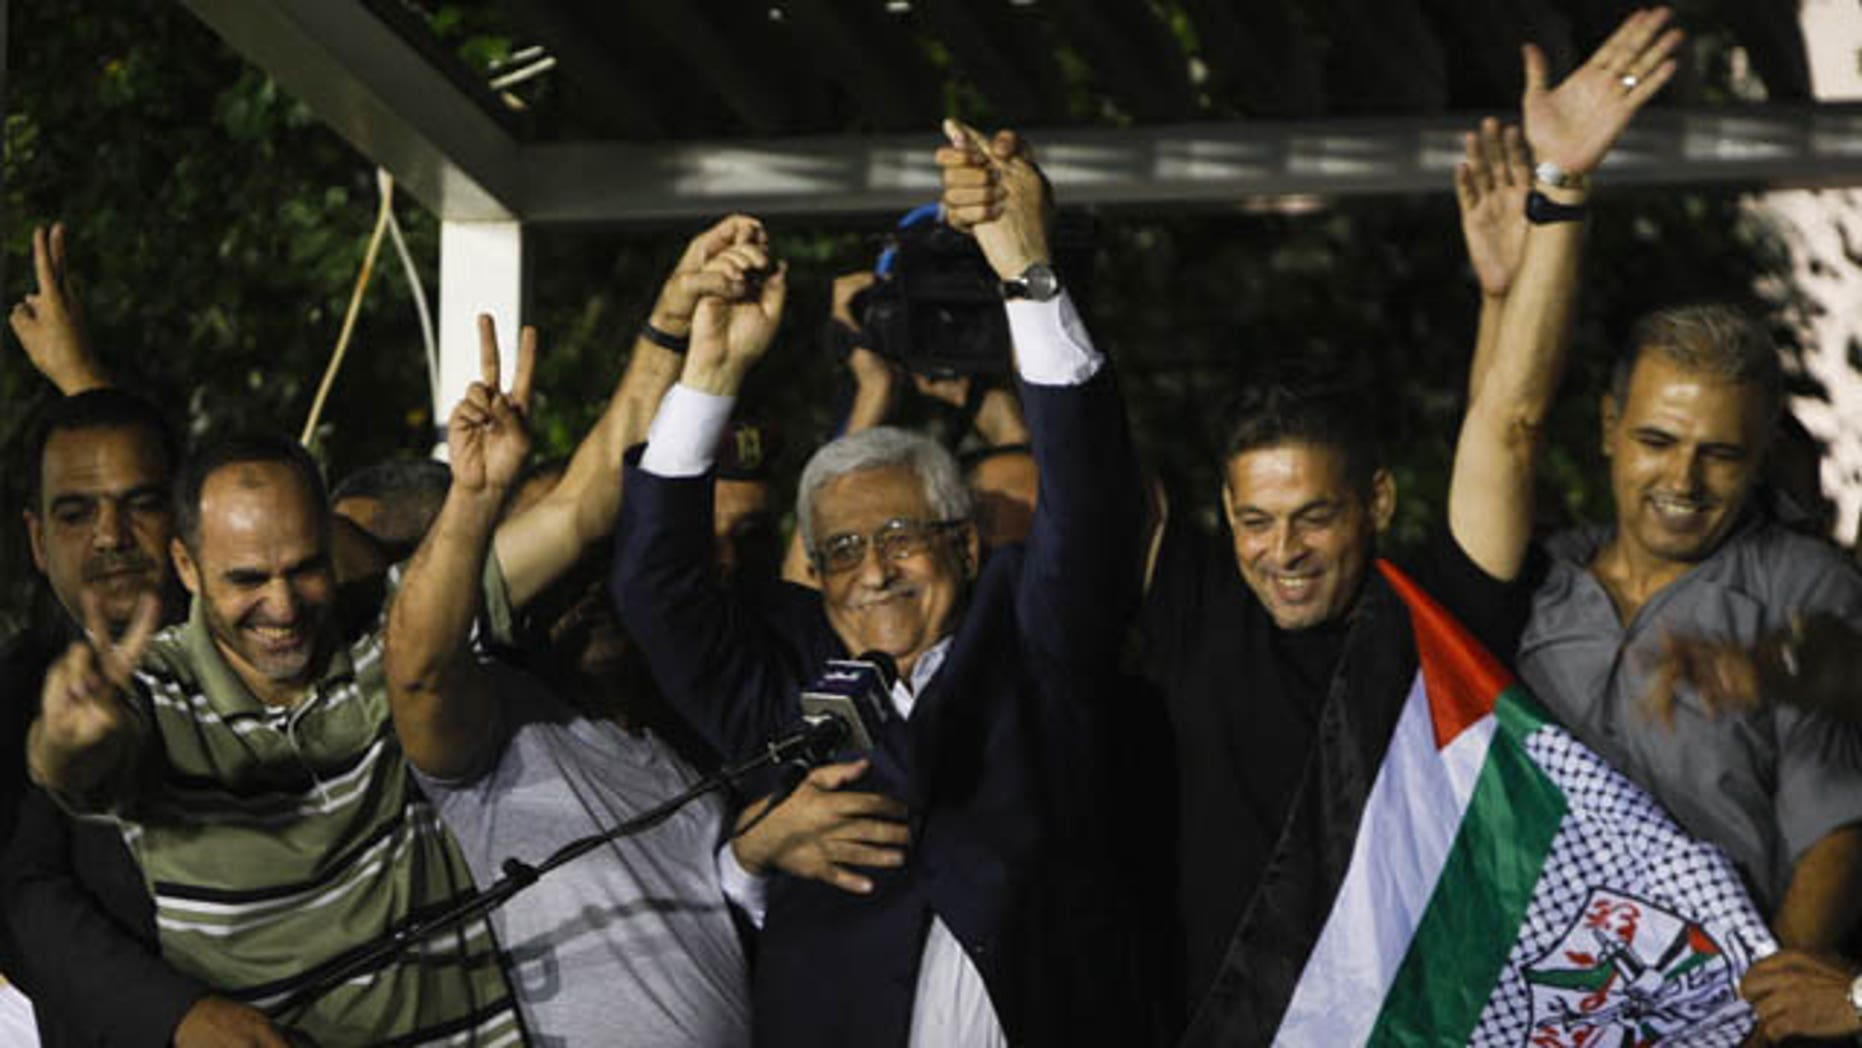 August 14, 2013: Palestinian President Mahmoud Abbas, center, waves with released Palestinian prisoners at his headquarters in the West Bank city of Ramallah. Israel released 26 Palestinian inmates, including many convicted in grisly killings, on the eve of long-stalled Mideast peace talks, angering families of those slain by the prisoners, who were welcomed as heroes in the West Bank and Gaza. (AP Photo)